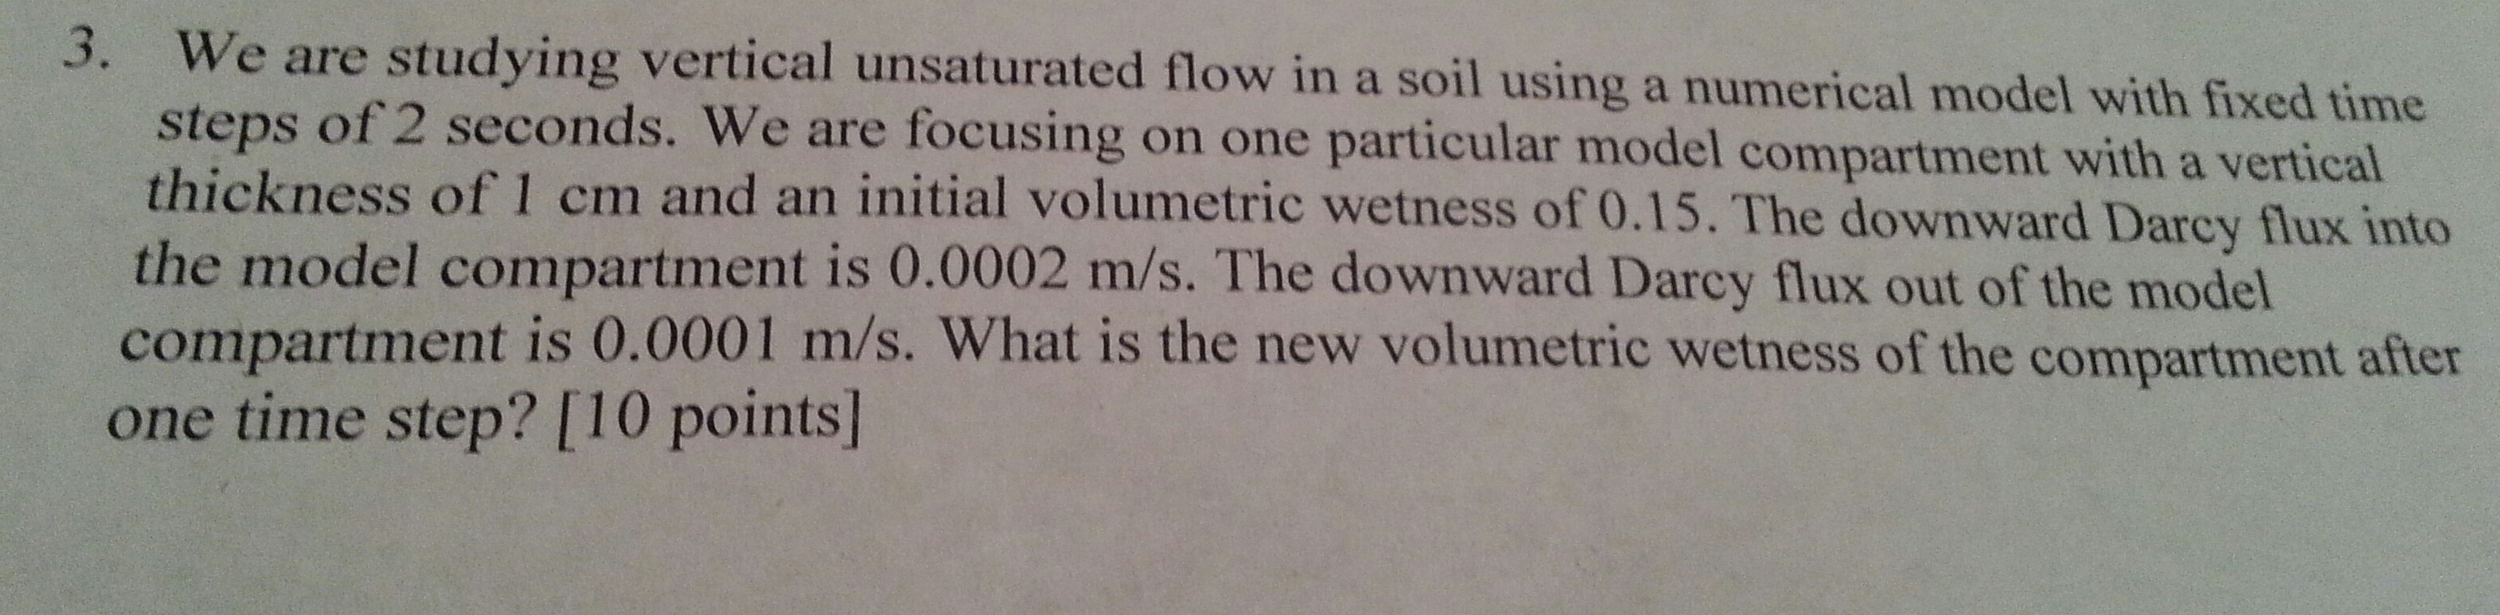 We are studying vertical unsaturated flow in a soi